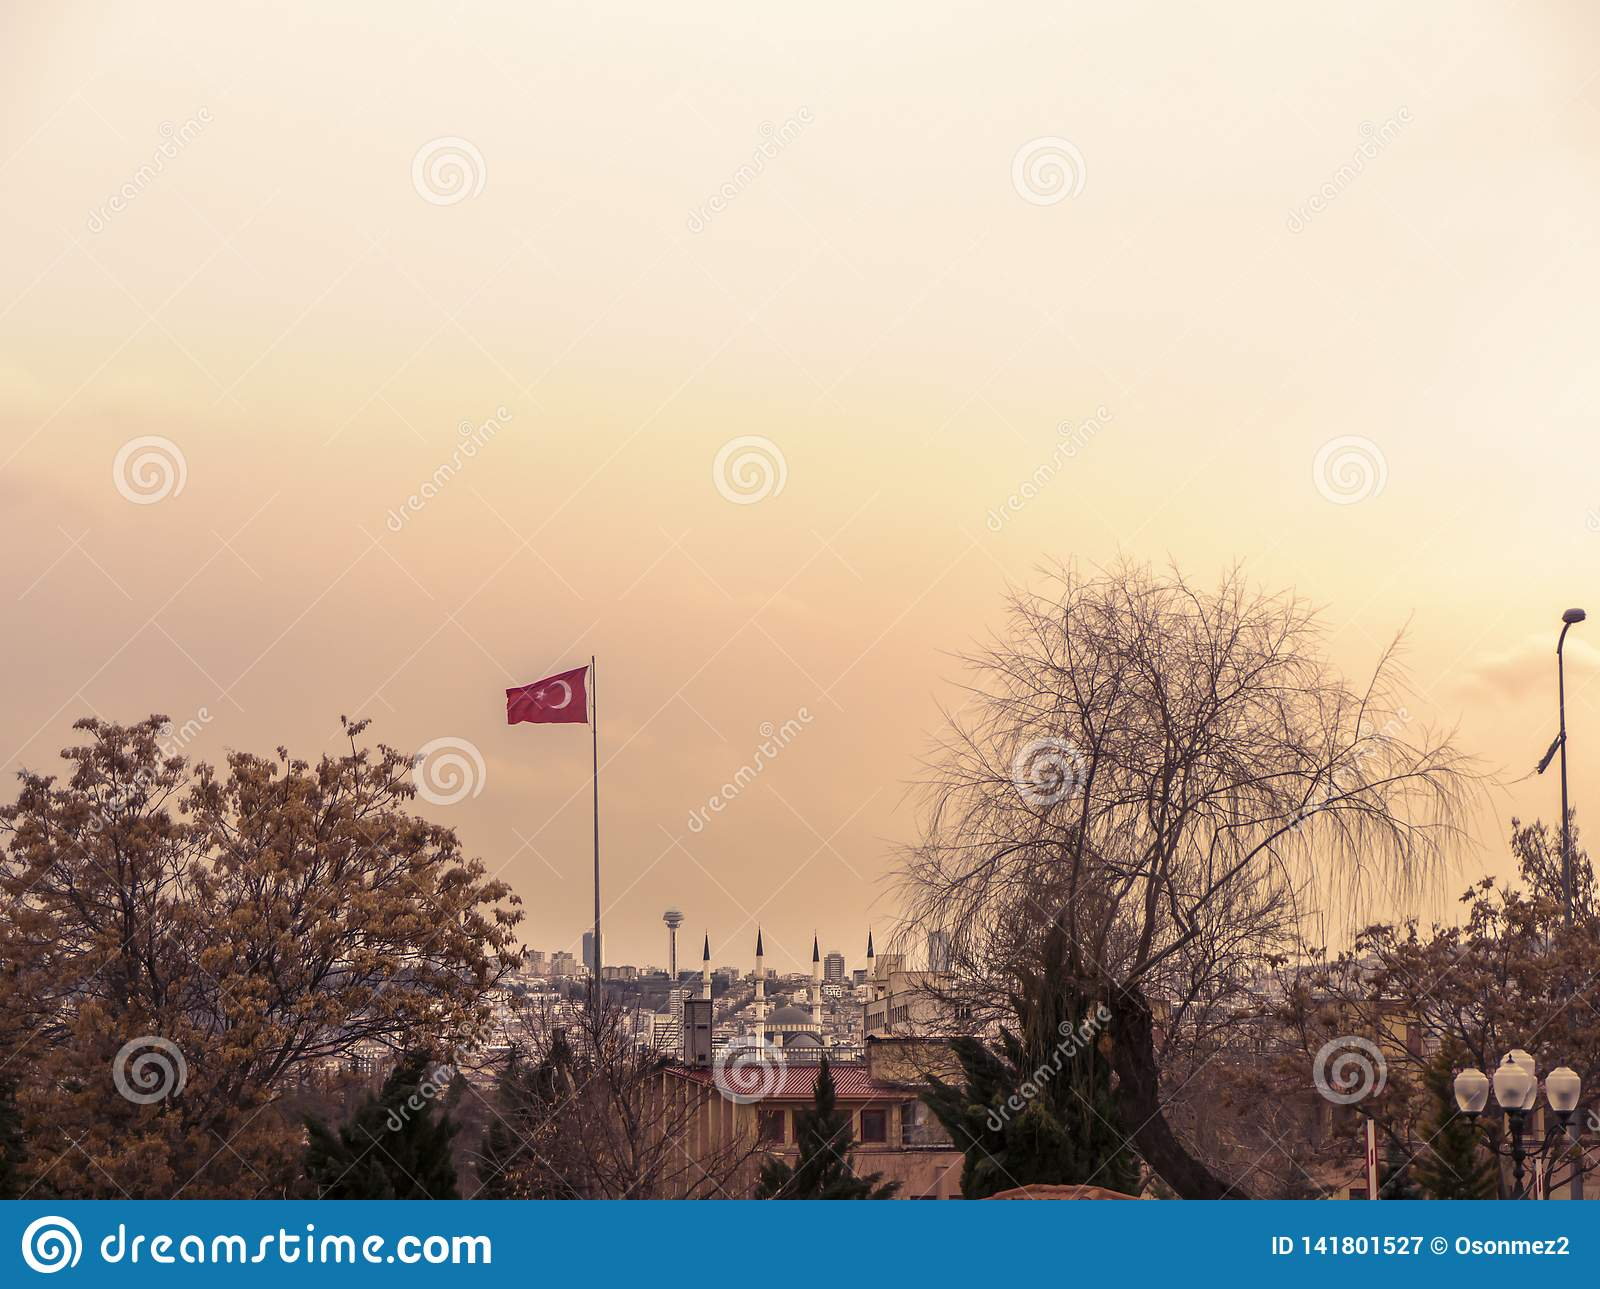 Ankara capital of the turkey and views with the Turkish flag